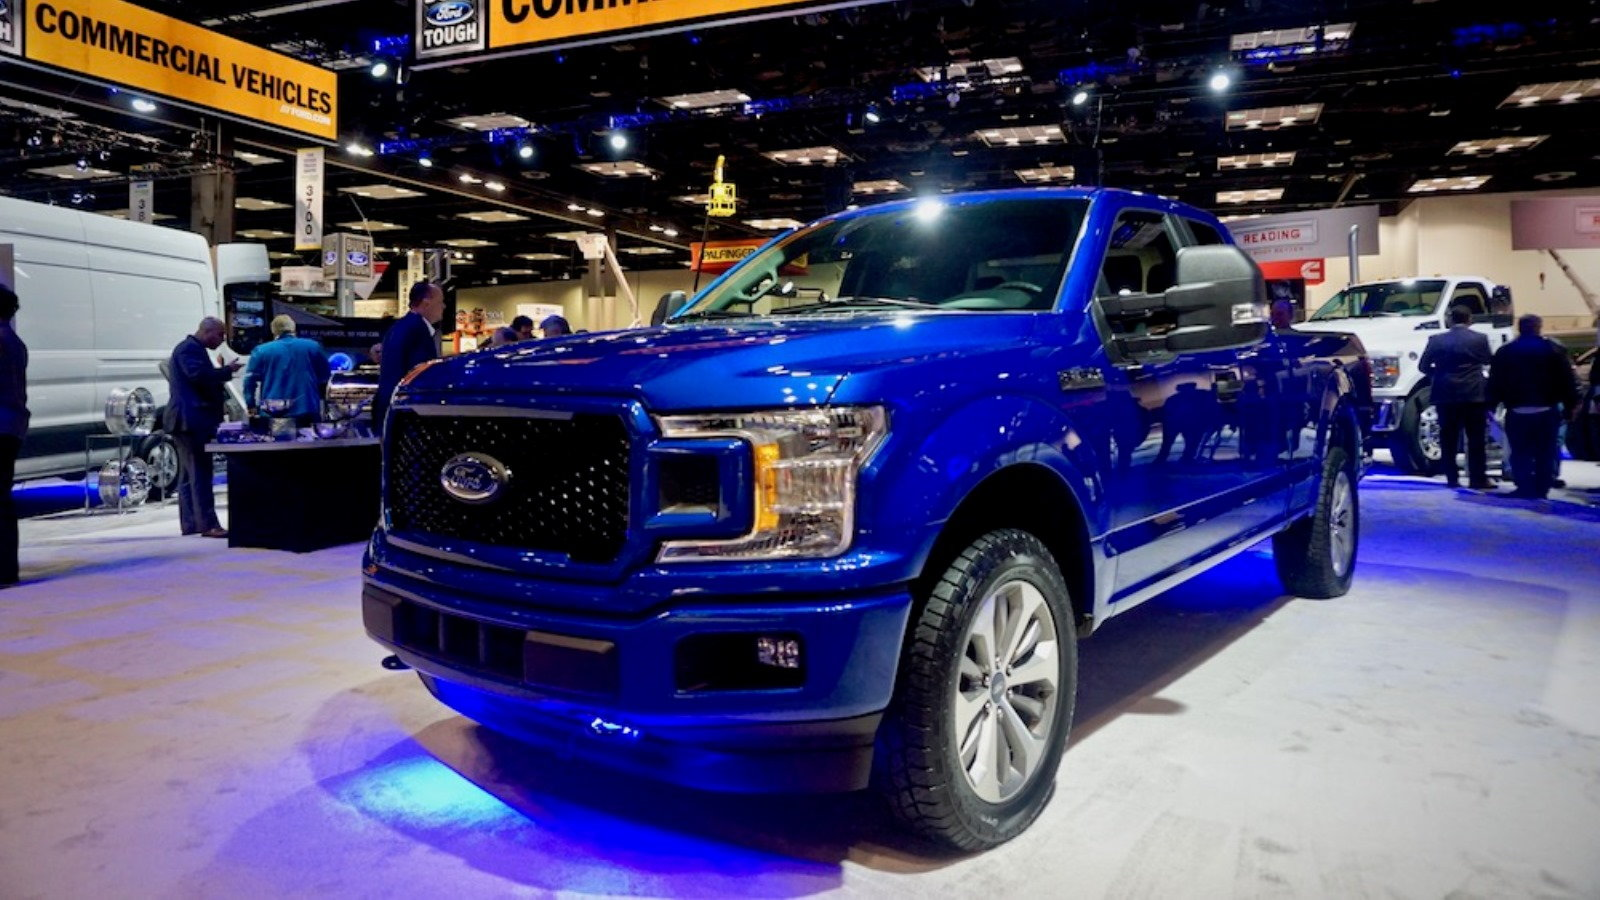 The F-150 line is being renewed